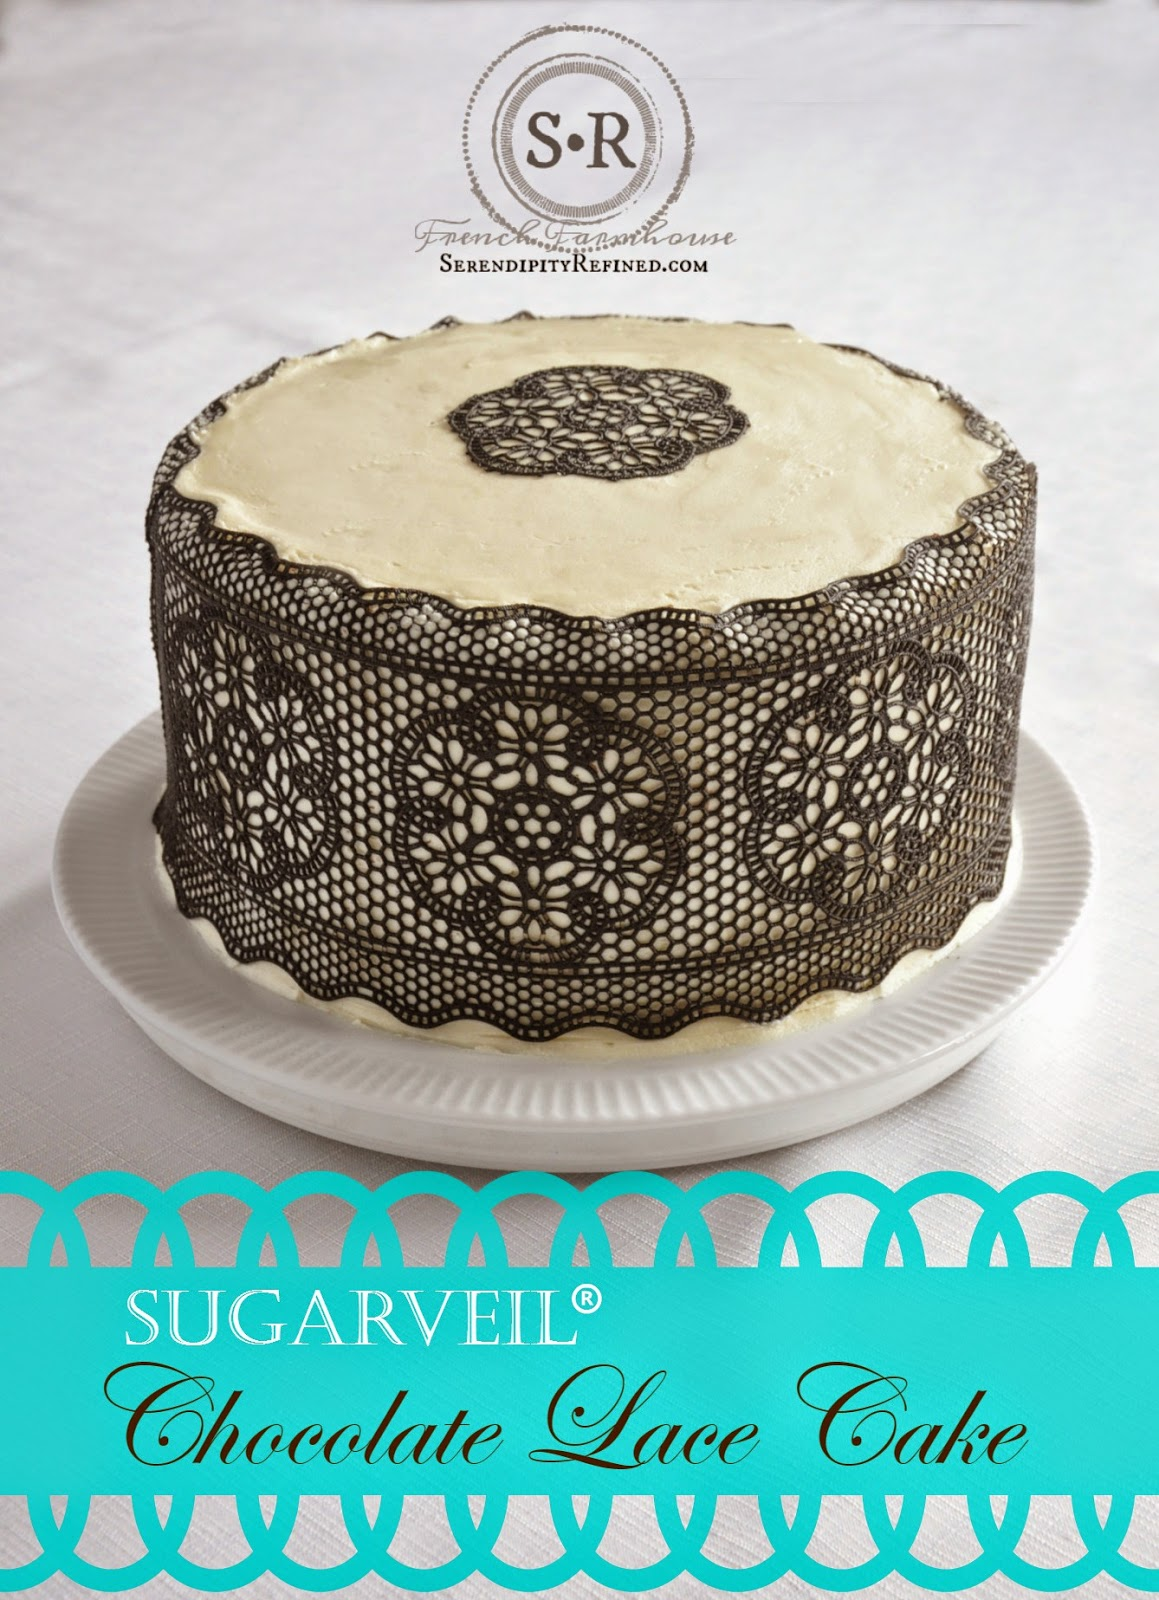 Serendipity Refined Blog: Easy Chocolate Lace Cake ...